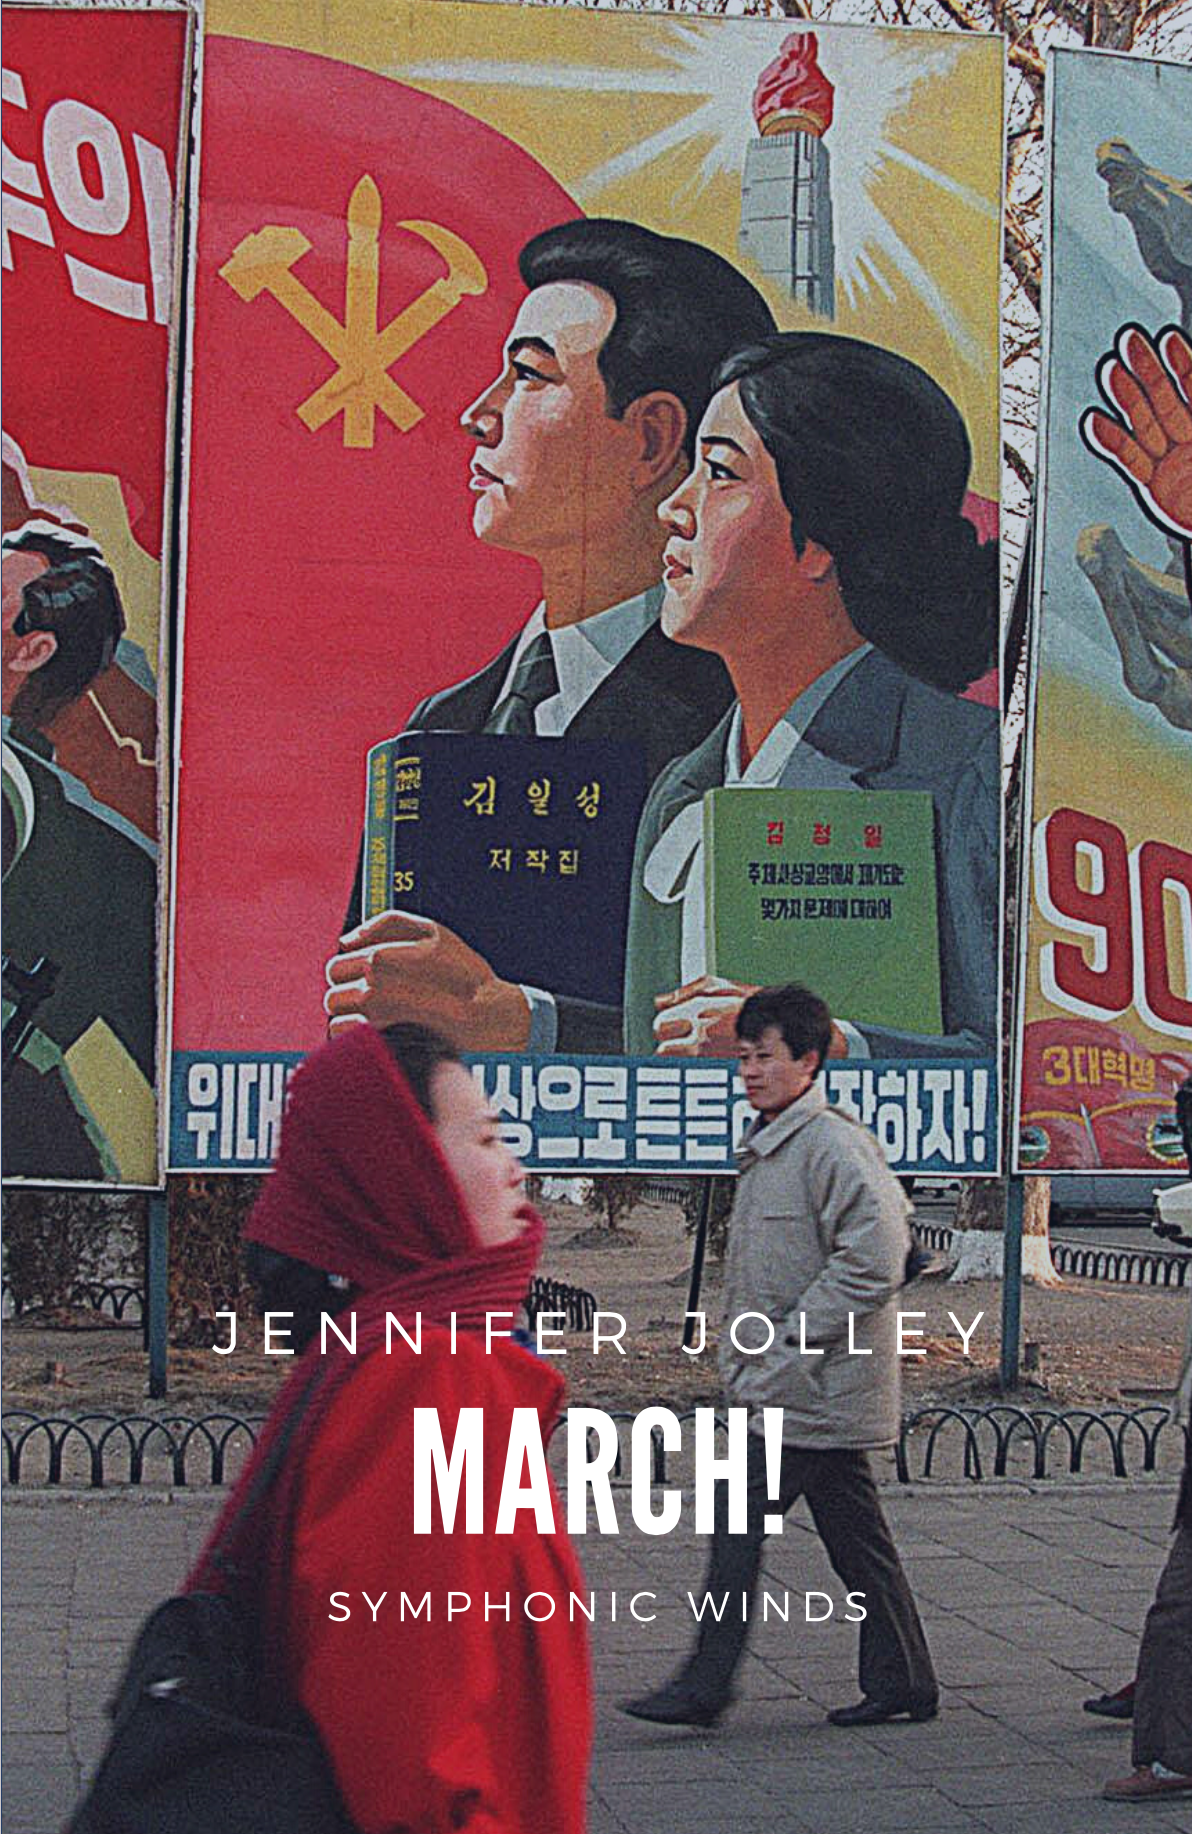 March! (Parts Rental Only) by Jennifer Jolley